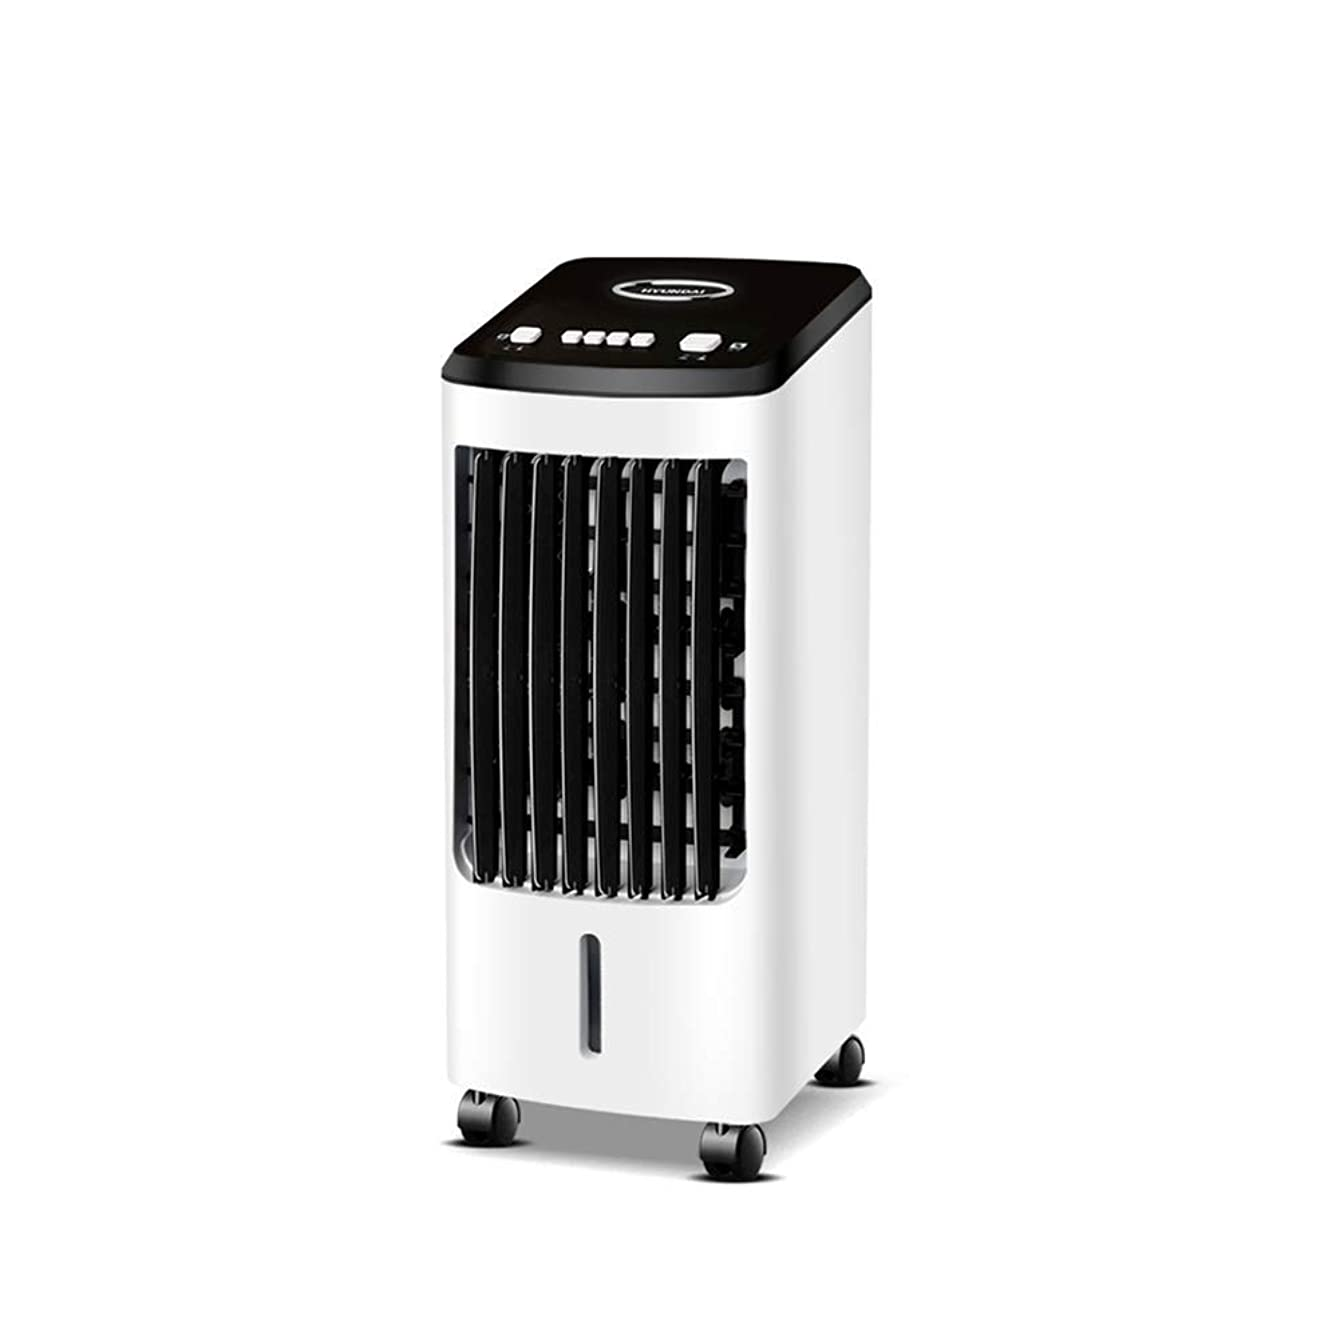 Djwoer Portable Air Cooler Fan Portable Evaporative Air Conditioner Tower Cold Air Cooler Fan Mobile Air Conditioning Remote Control Timing Mute Energy Saving (Color : White1)